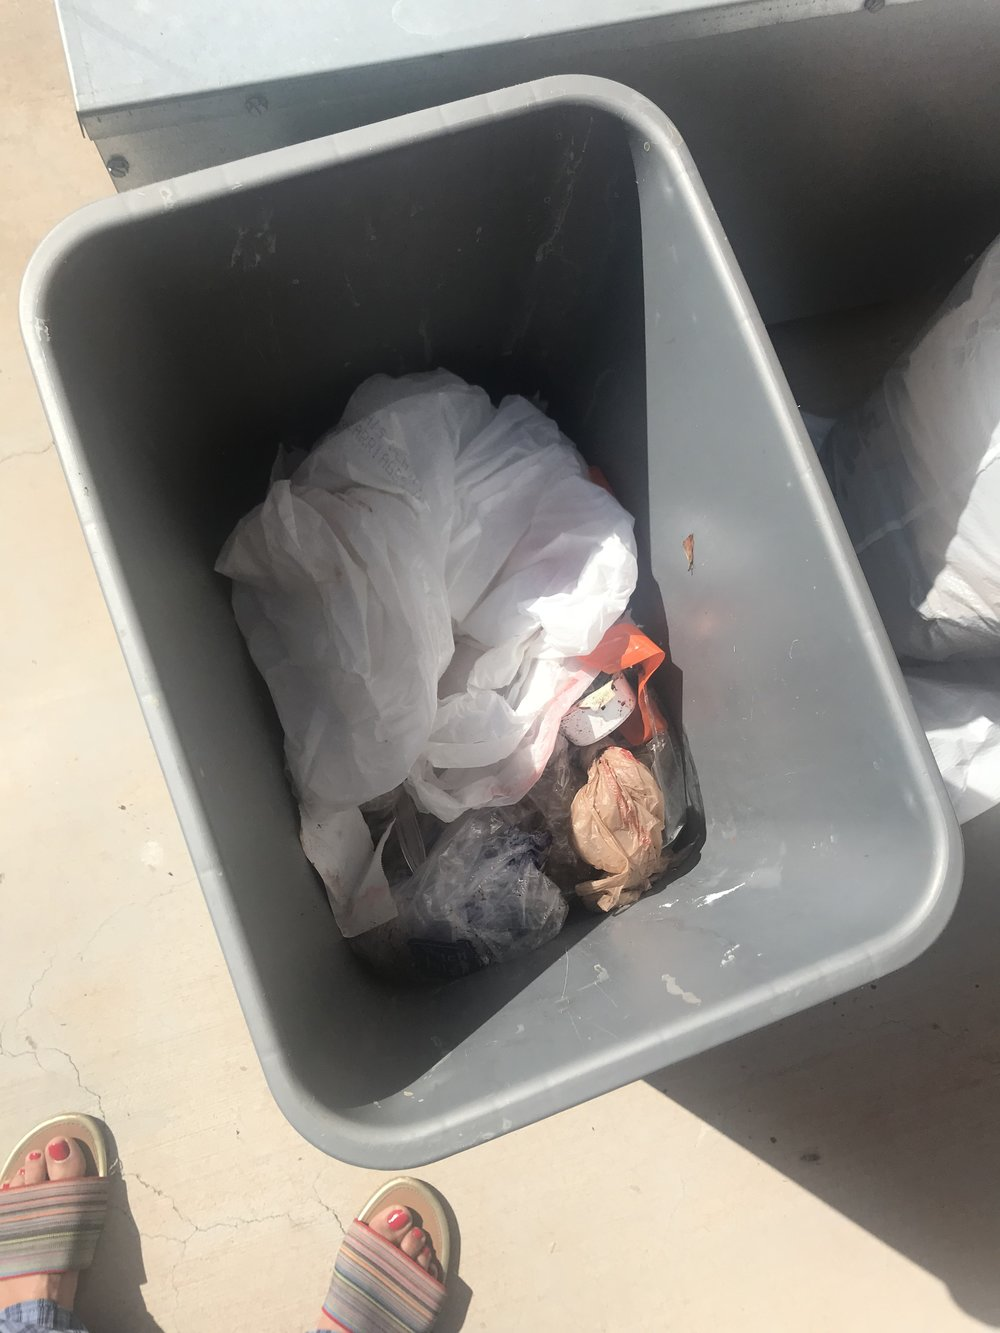 And this was the only trash left!